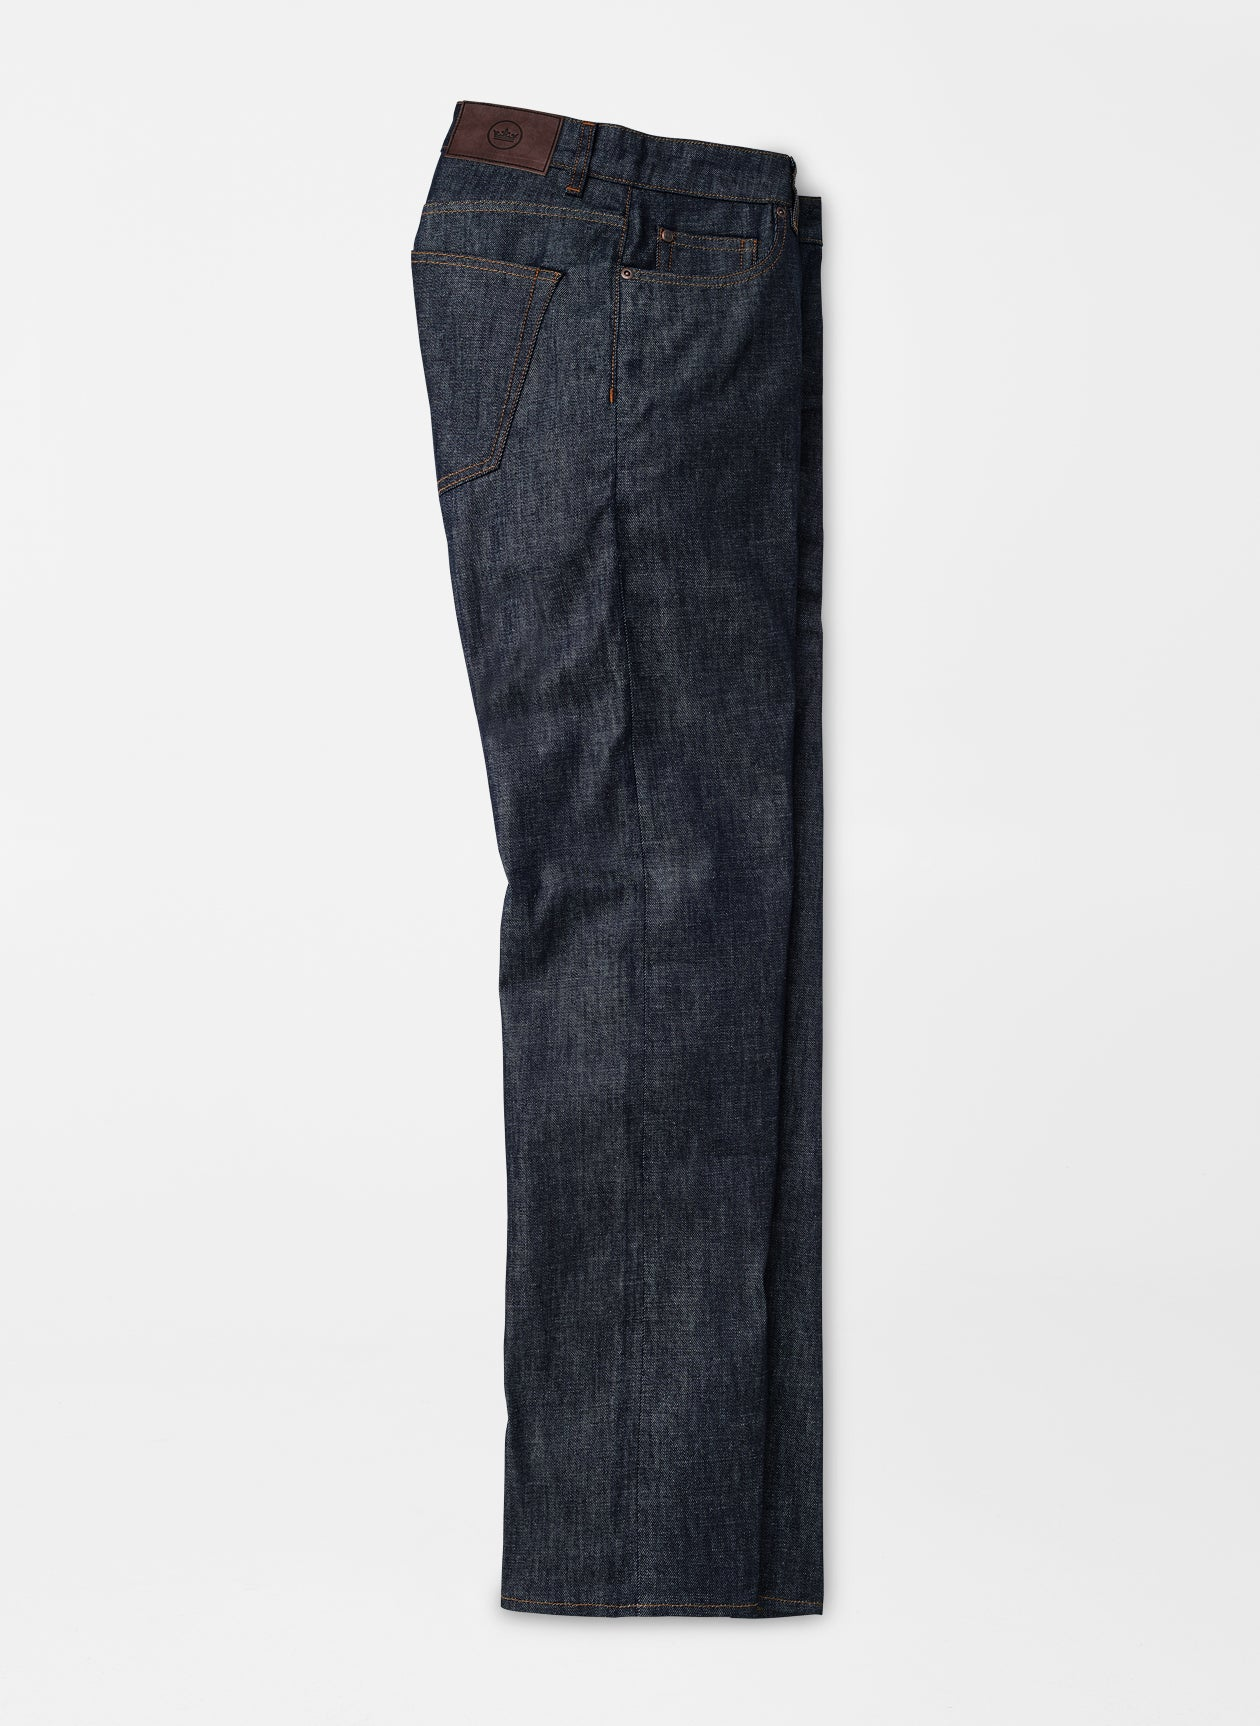 PILOT MILL DENIM - INDIGO